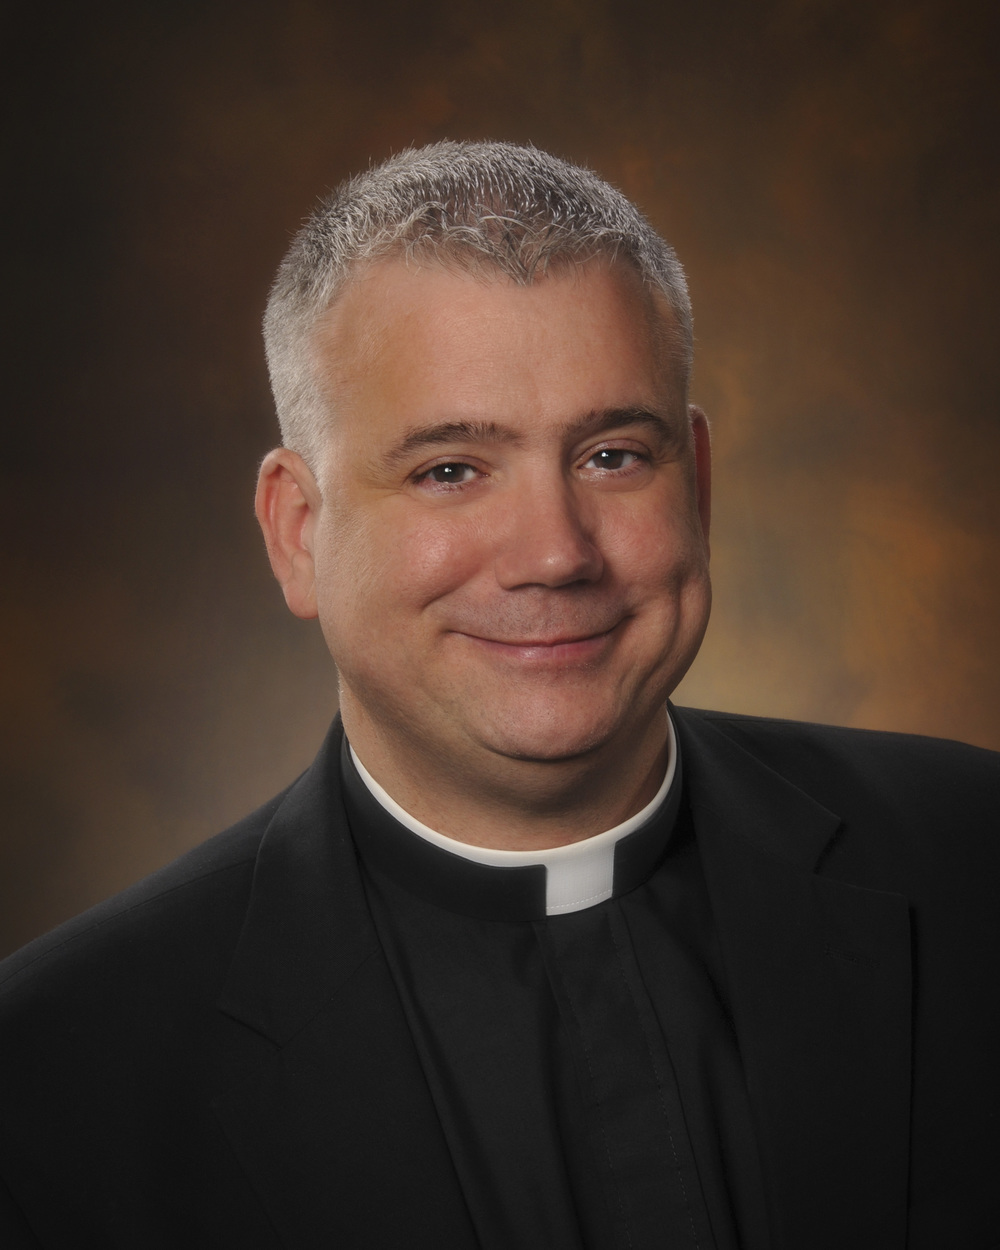 Riveting, humorous priest brings insight to reconciliation and surrender